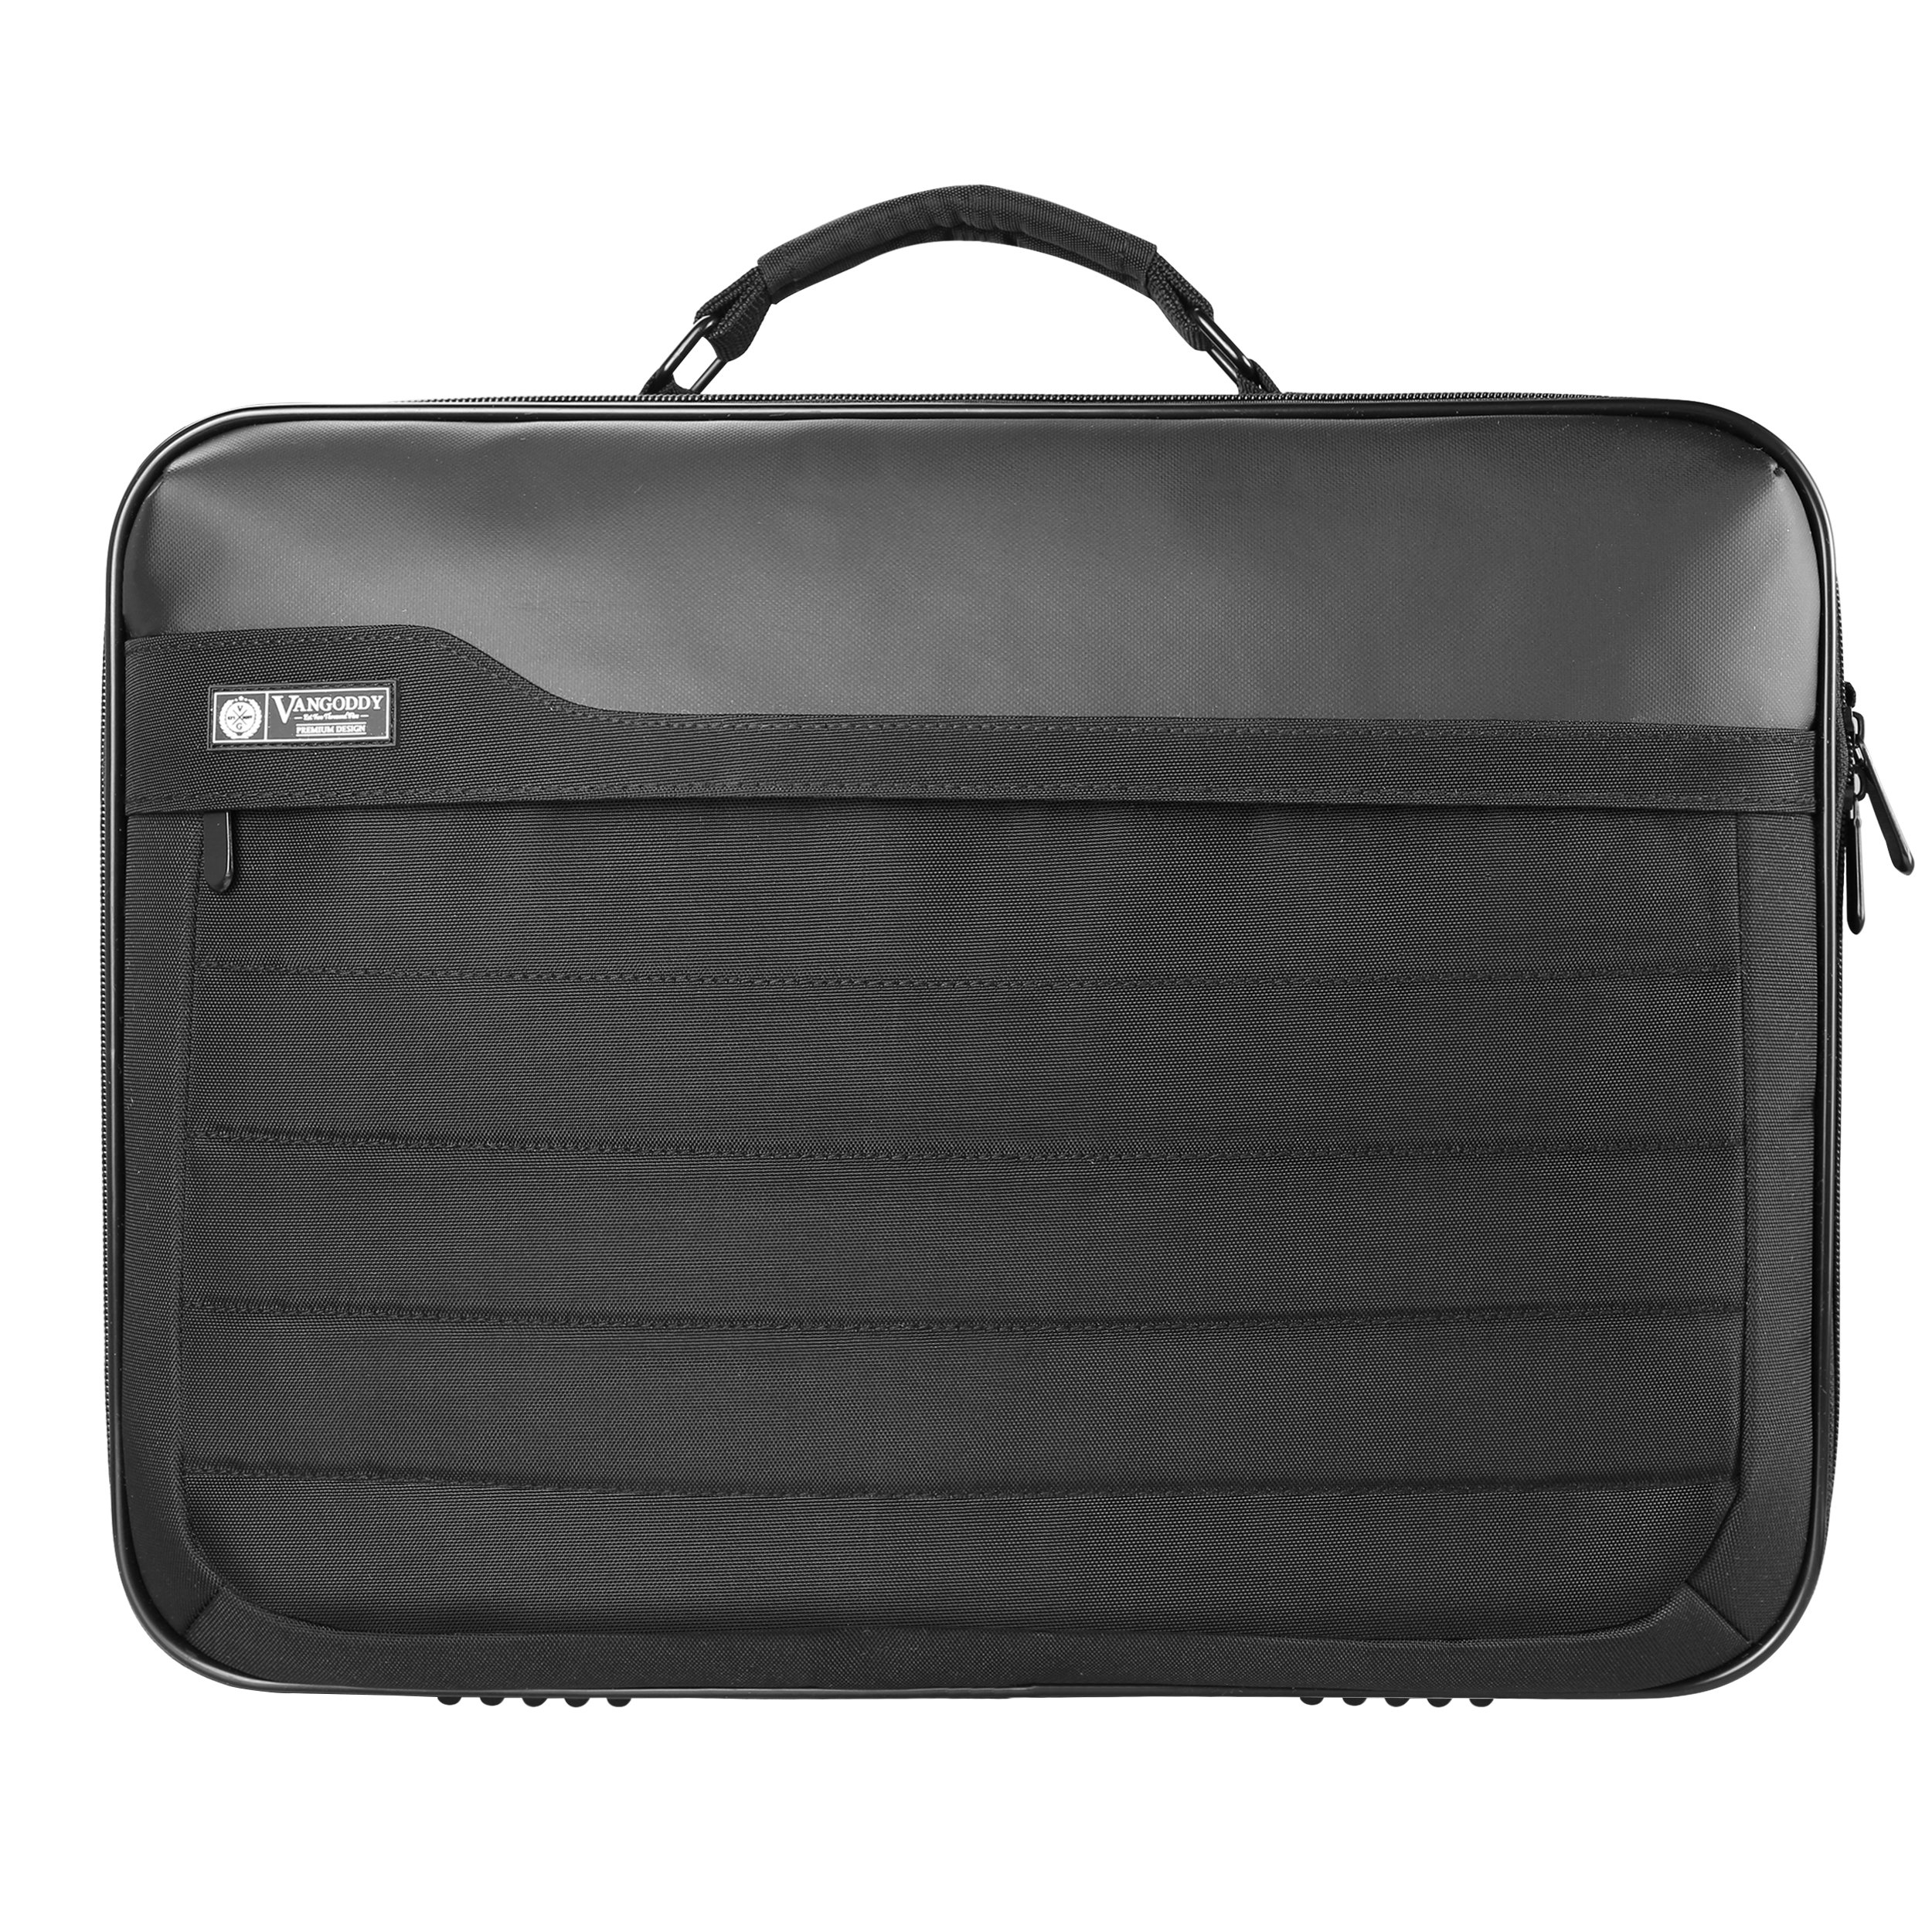 Reid School Business Travel Bag For Lenovo 11.6'' - 13.3'' 2in1 Laptop Tablet Computers